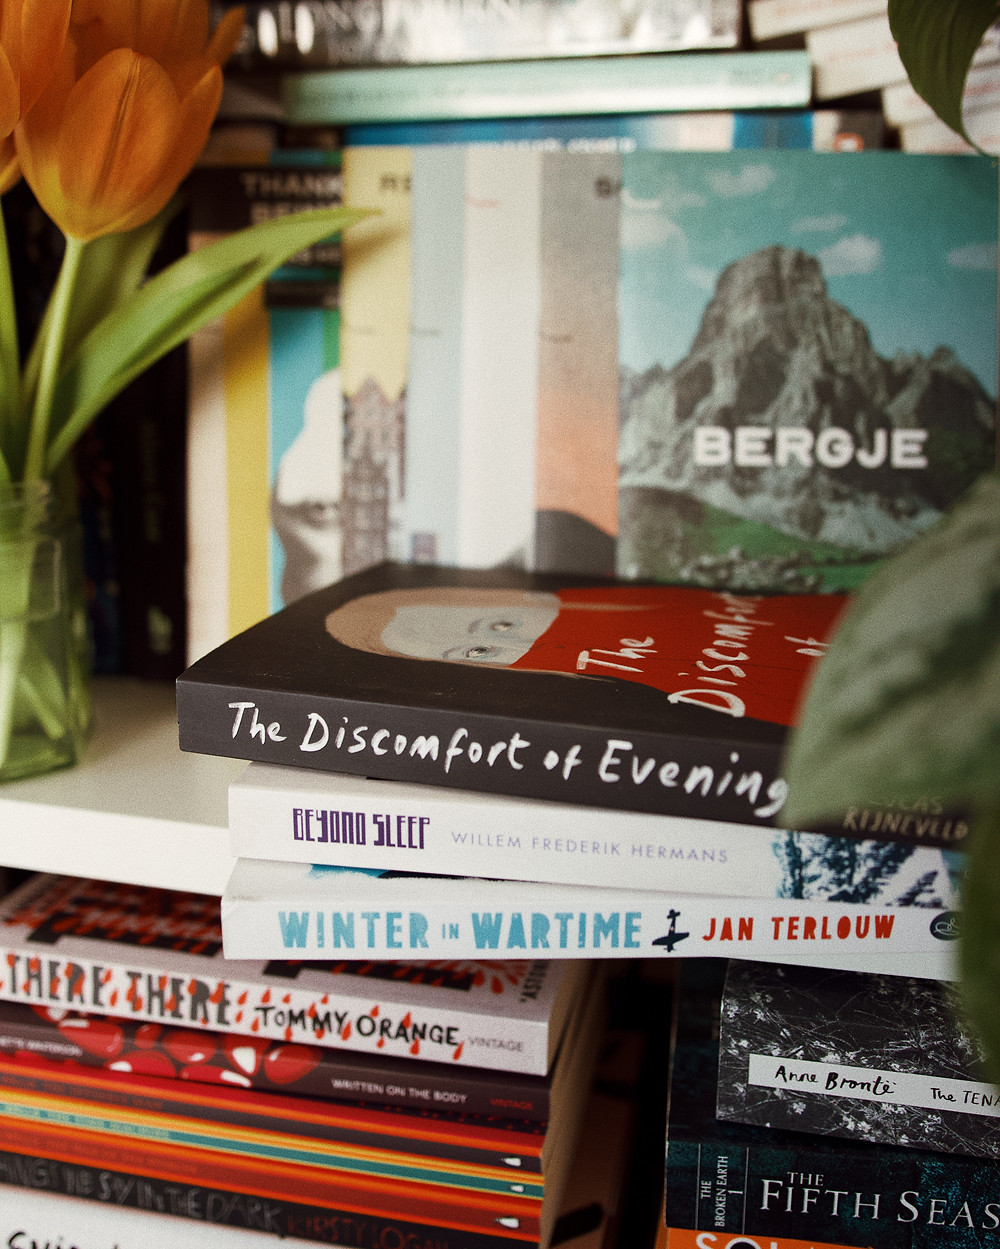 A collection of books including 'The Discomfort of Evening', 'Winter Wartime' and 'Beyond Sleep'